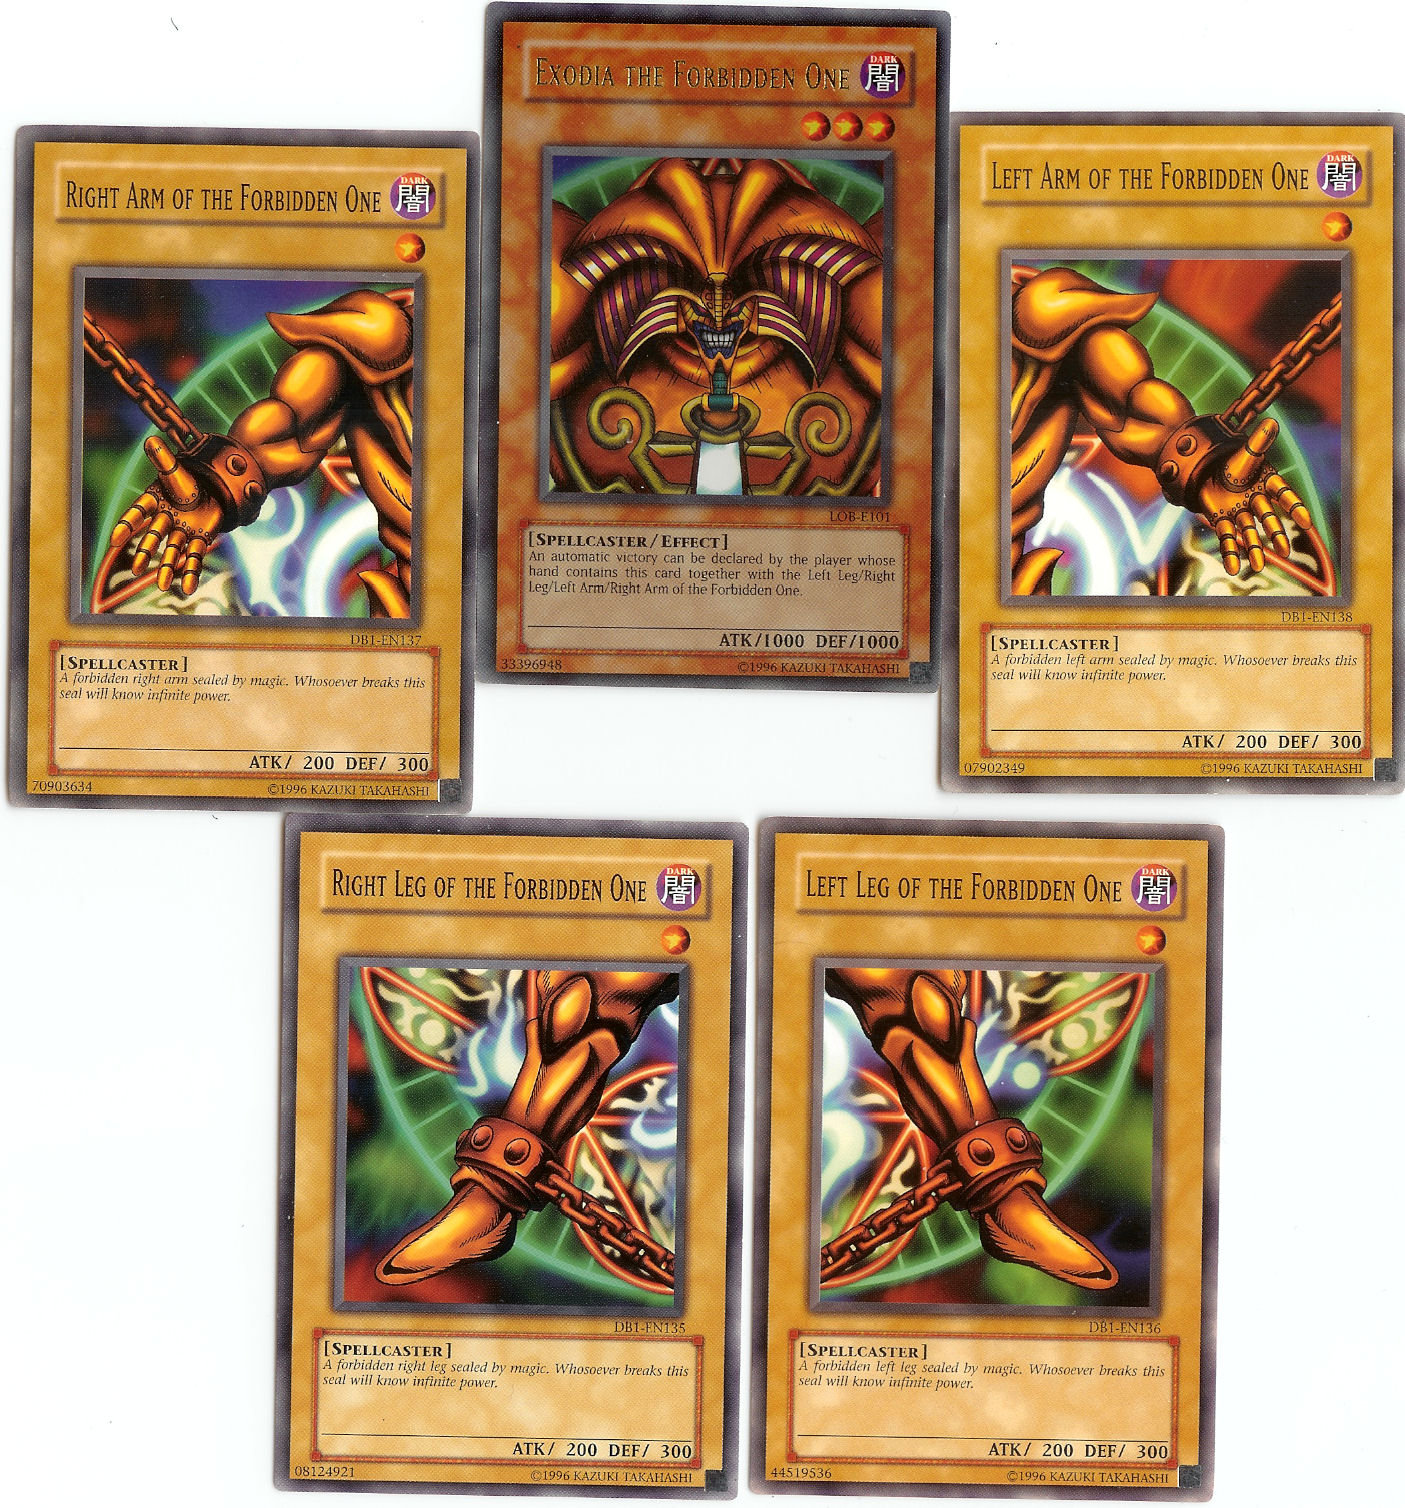 Free Download Exodia The Forbidden One By Ssjgarfield 1405x1508